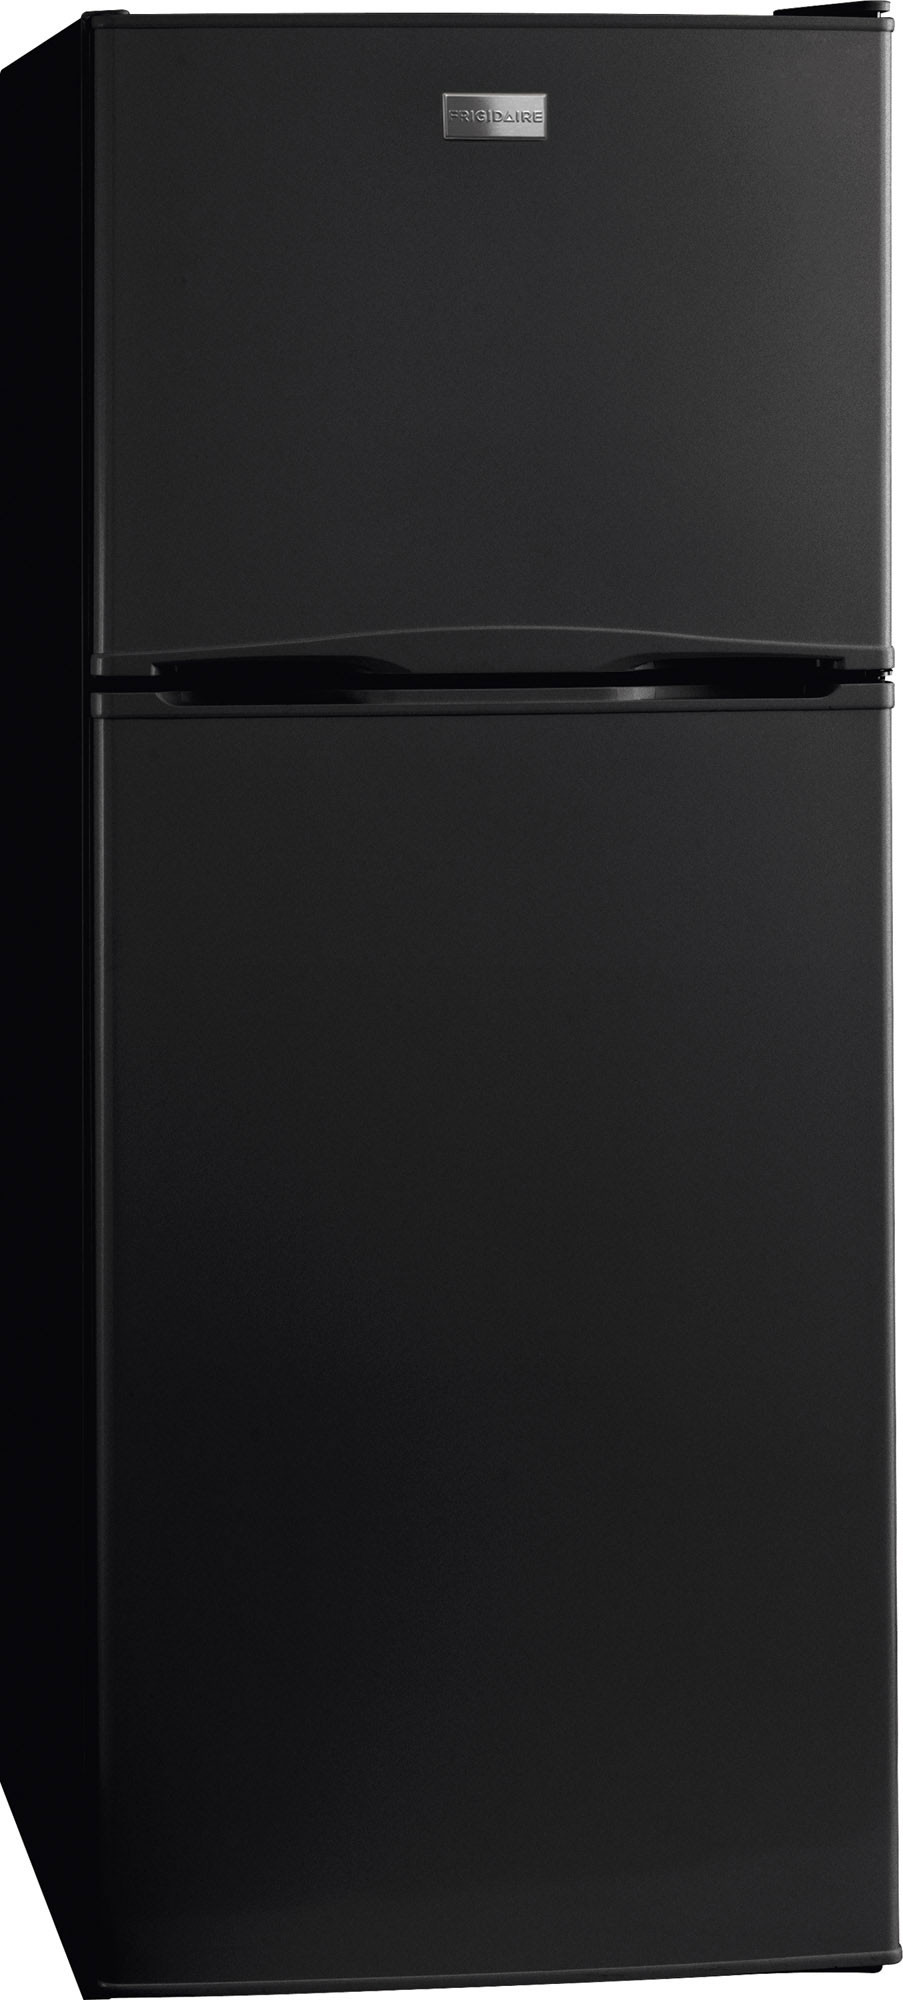 Frigidaire Top Freezer Refrigerators